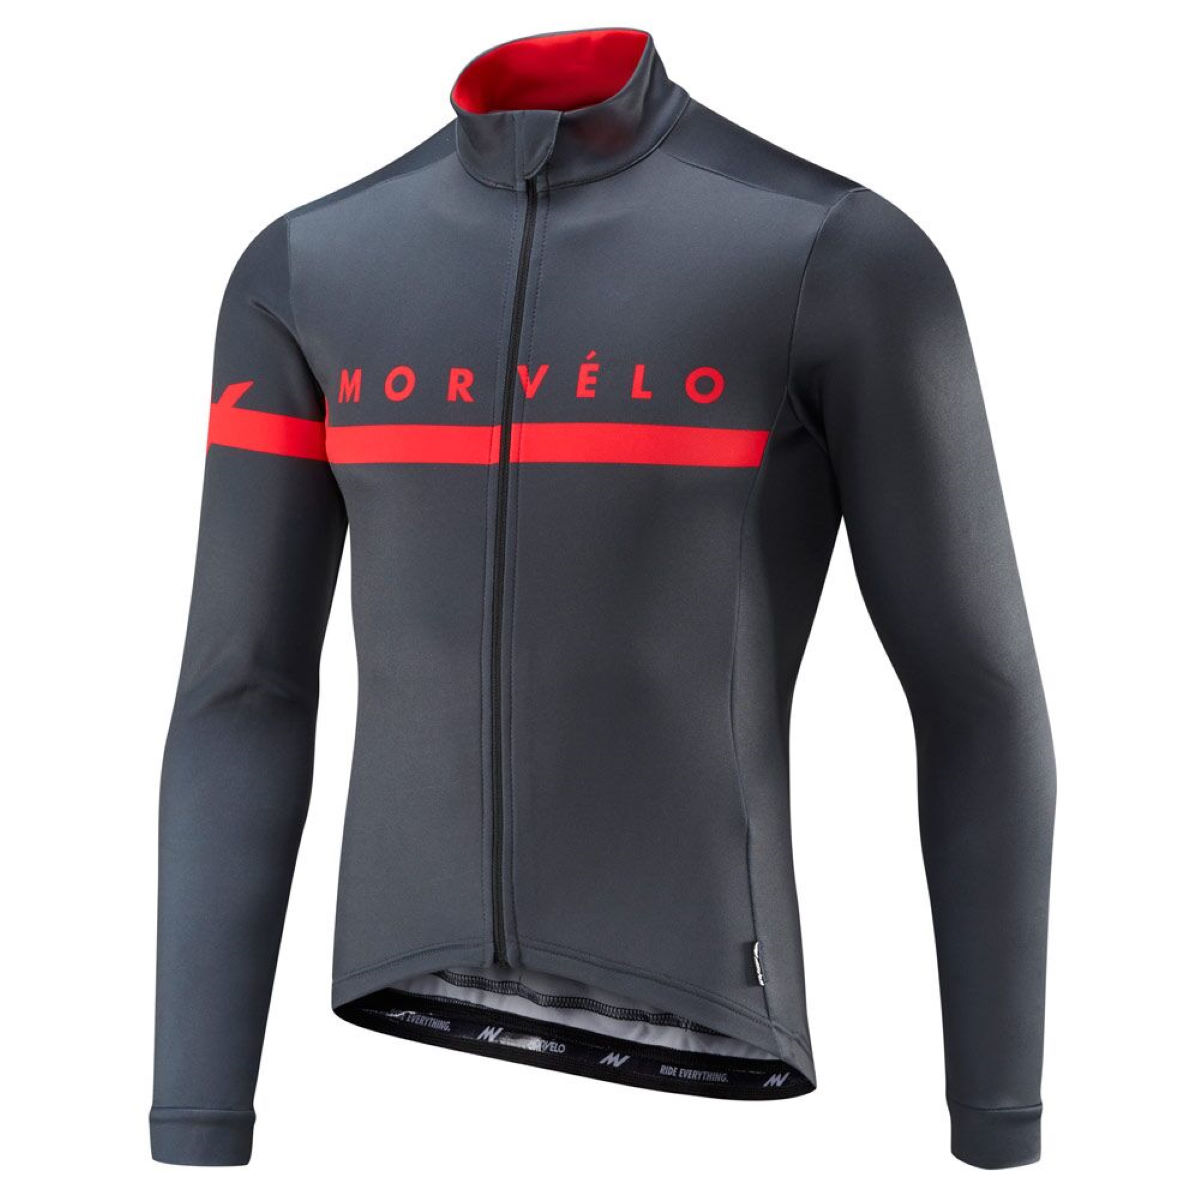 Maillot Morvelo Kuler Thermoactive (manches longues) - M Gris